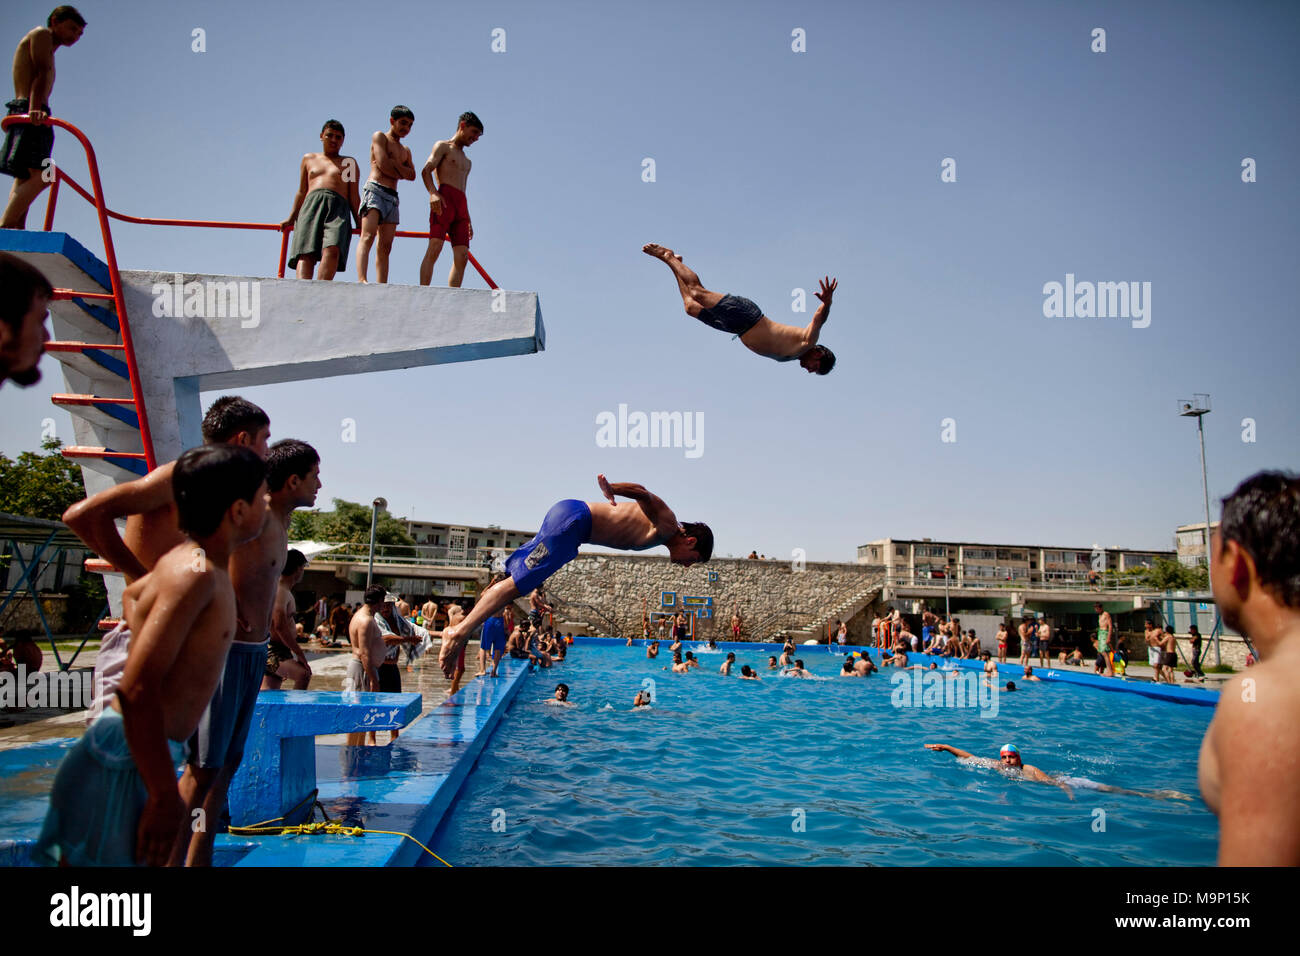 Afghan men and boys enjoy a day at the pool in Kabul, Afghanistan, Friday, July 17, 2009. - Stock Image